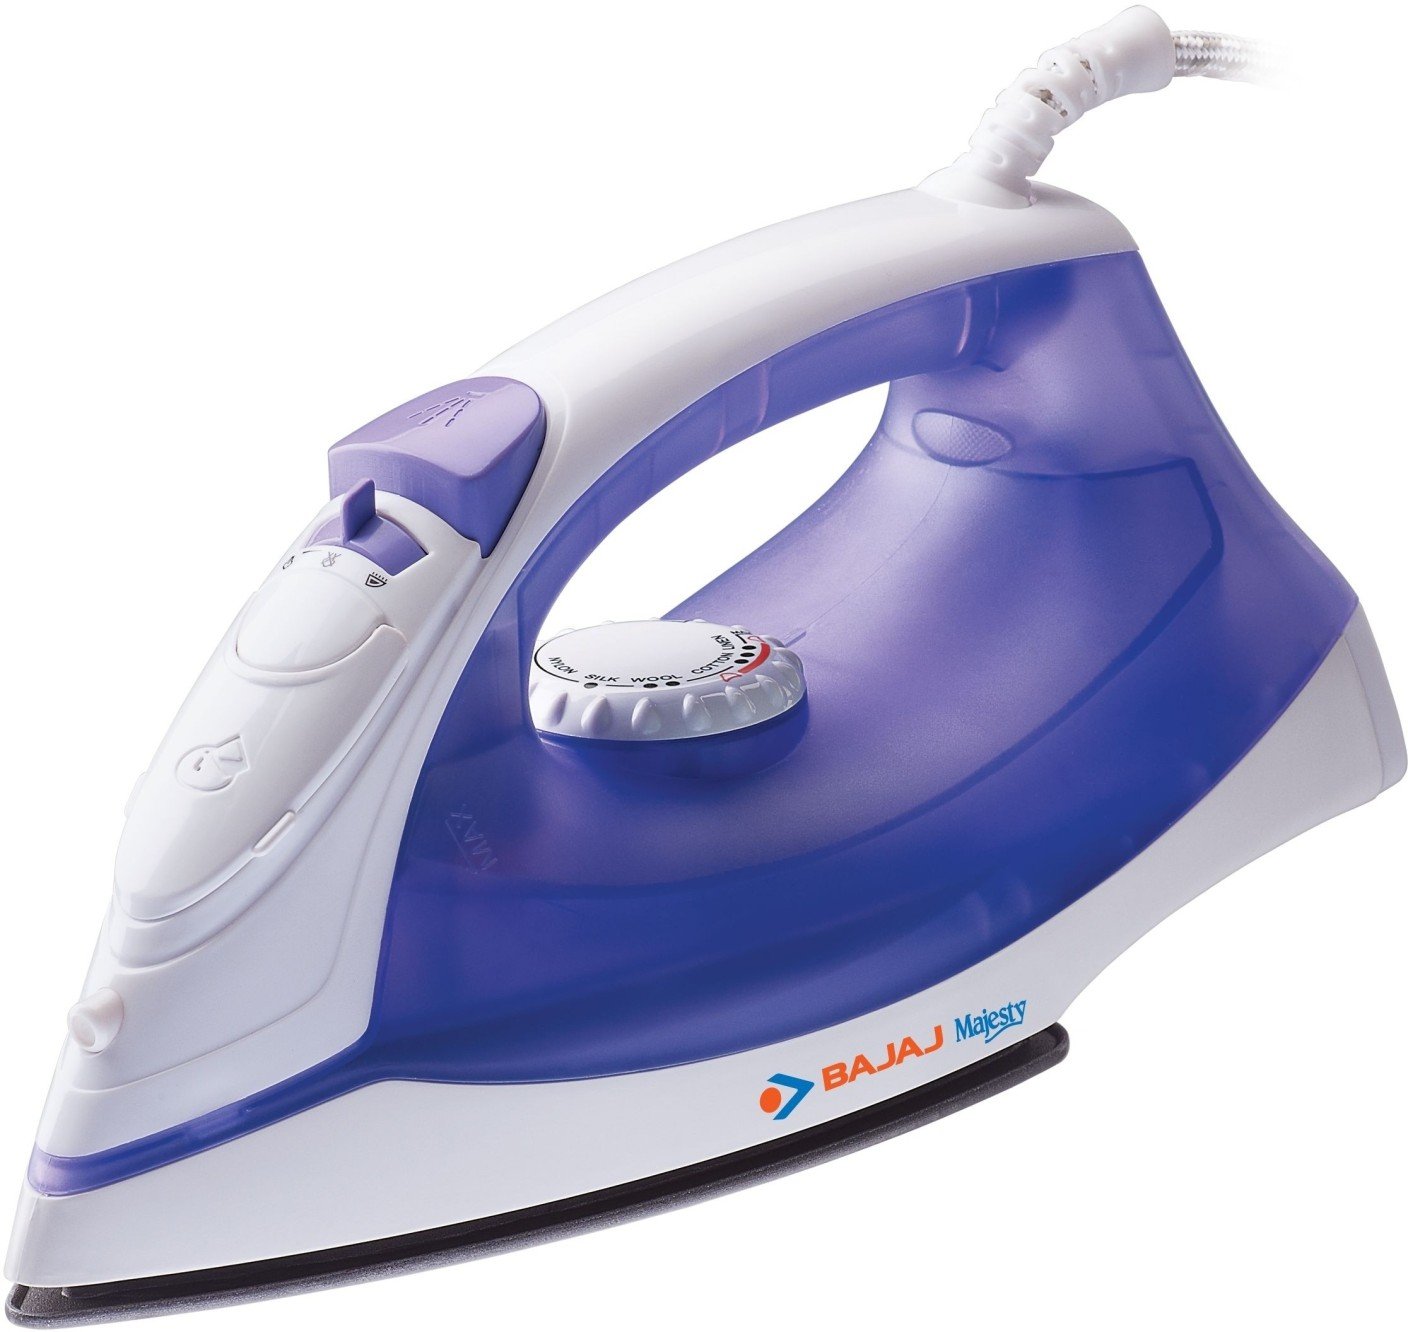 Bajaj iron box price list in bangalore dating 4